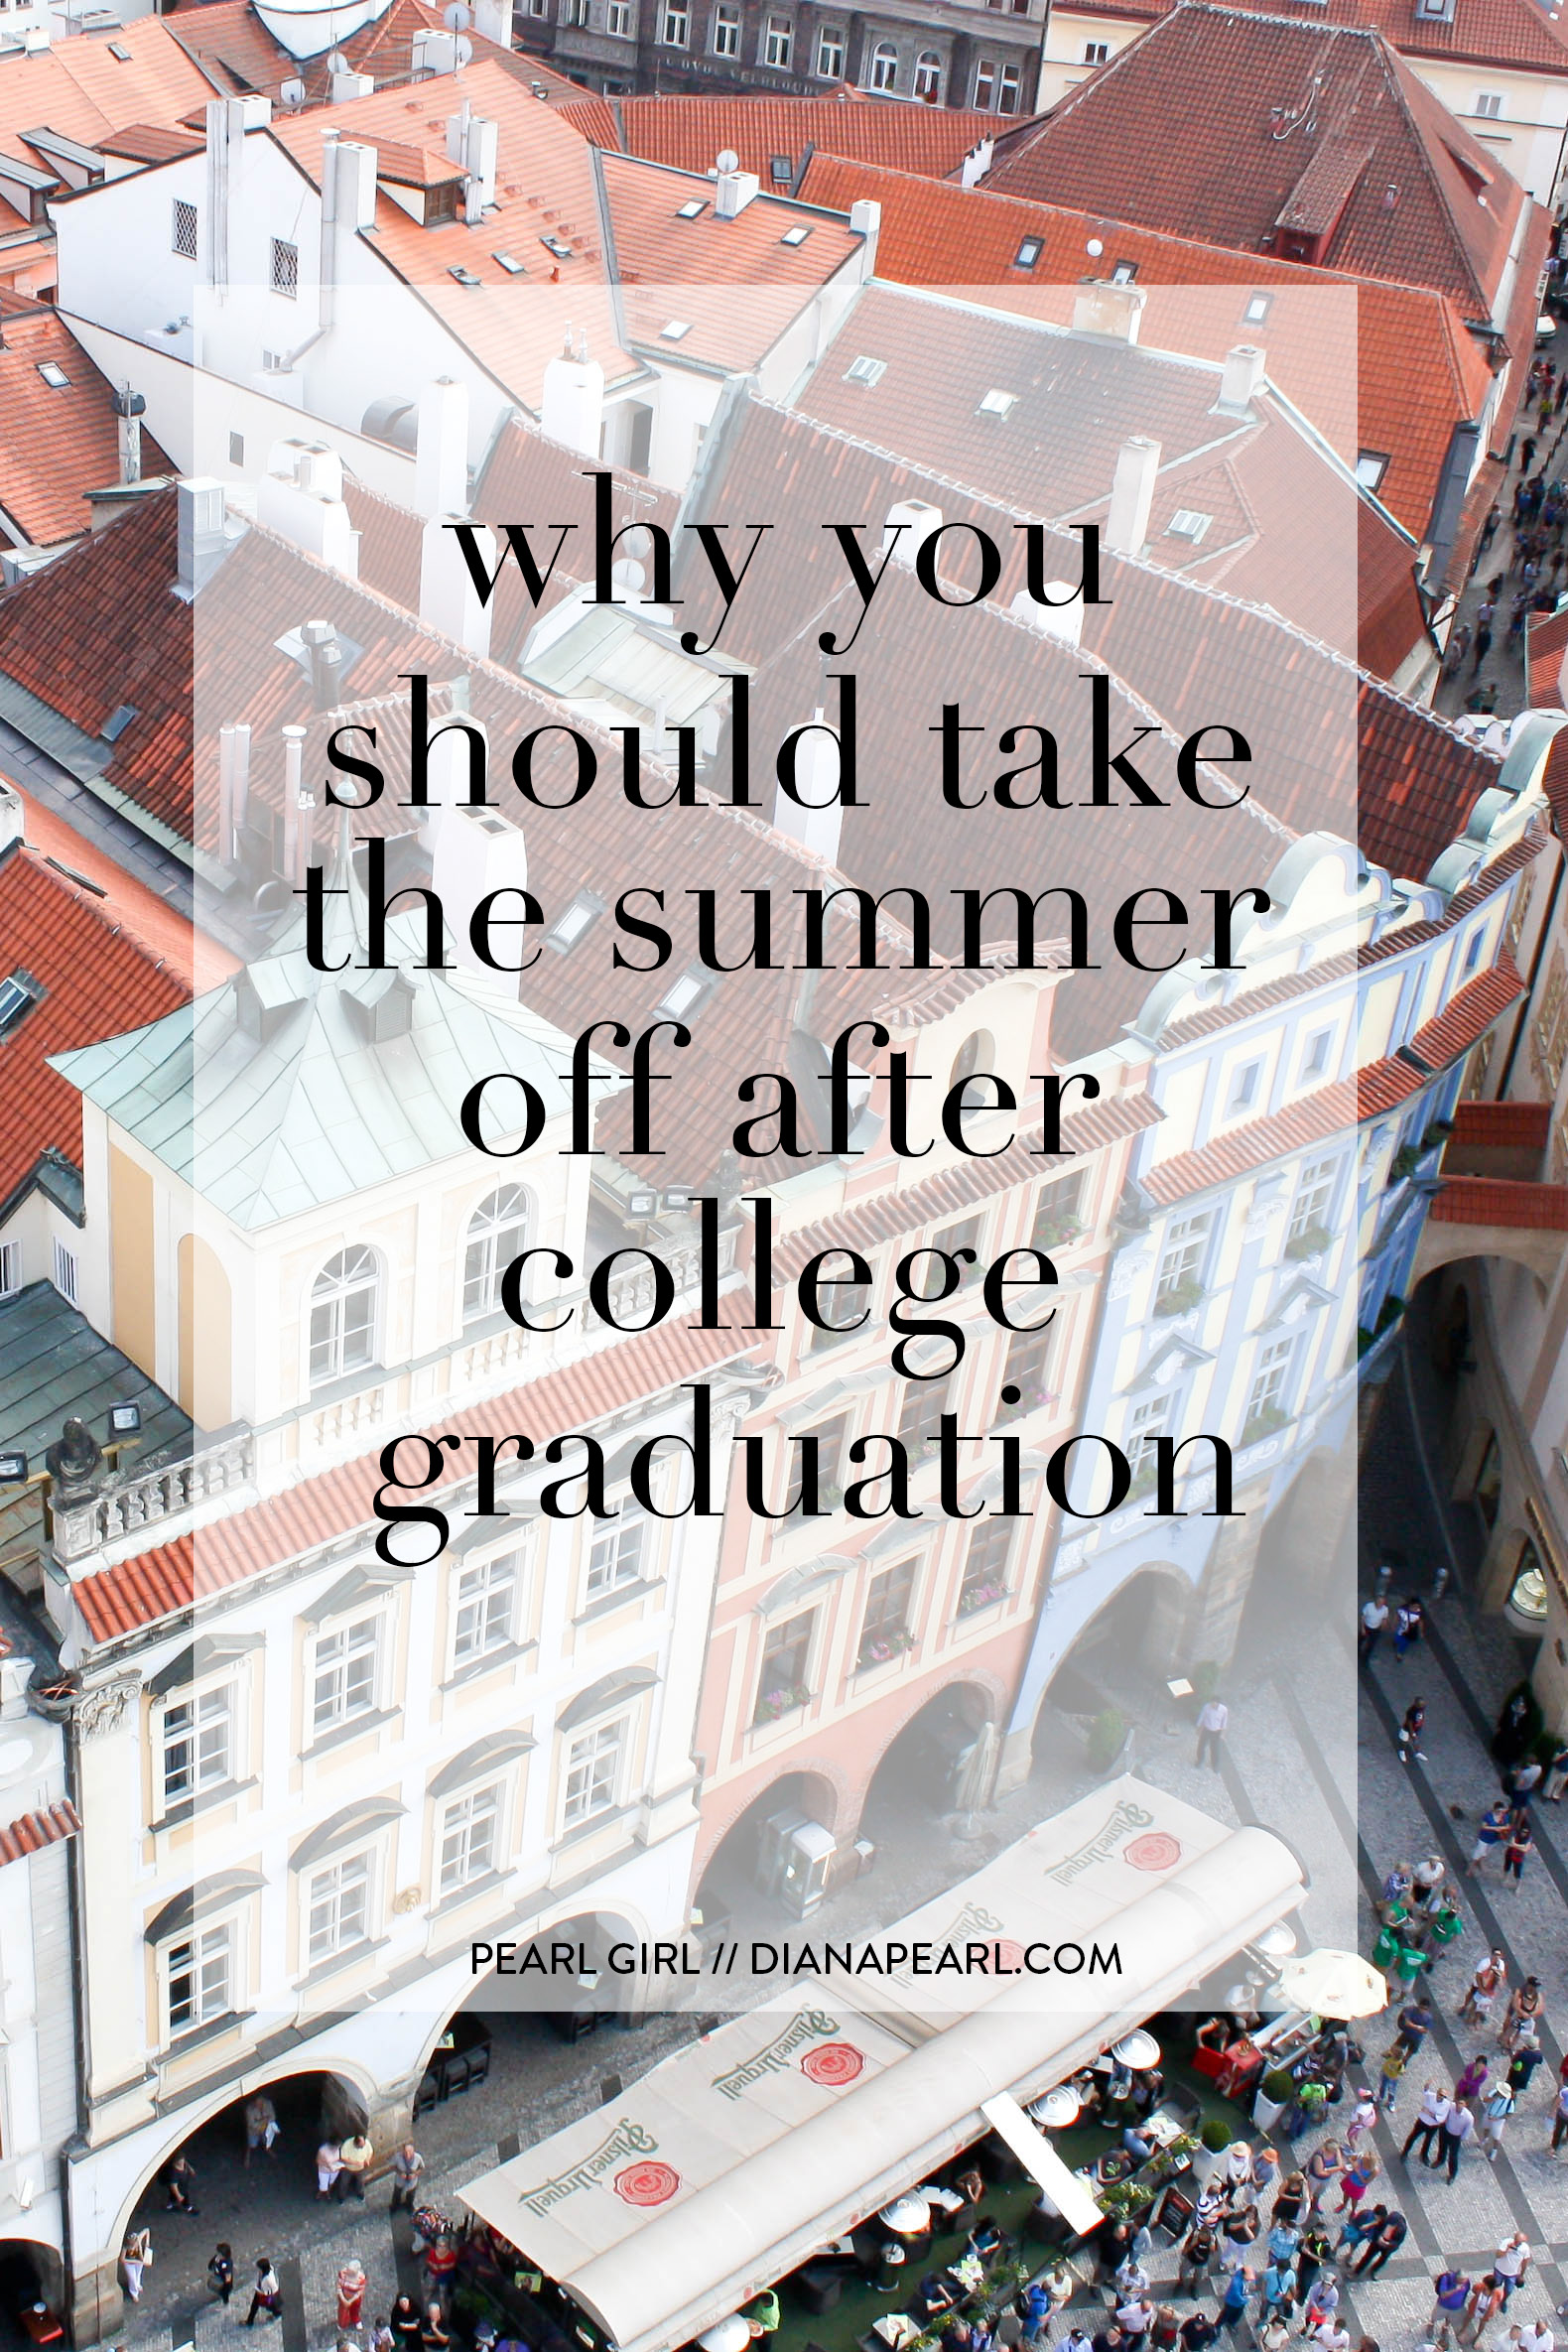 Why You Should Take the Summer off After College Graduation // Pearl Girl